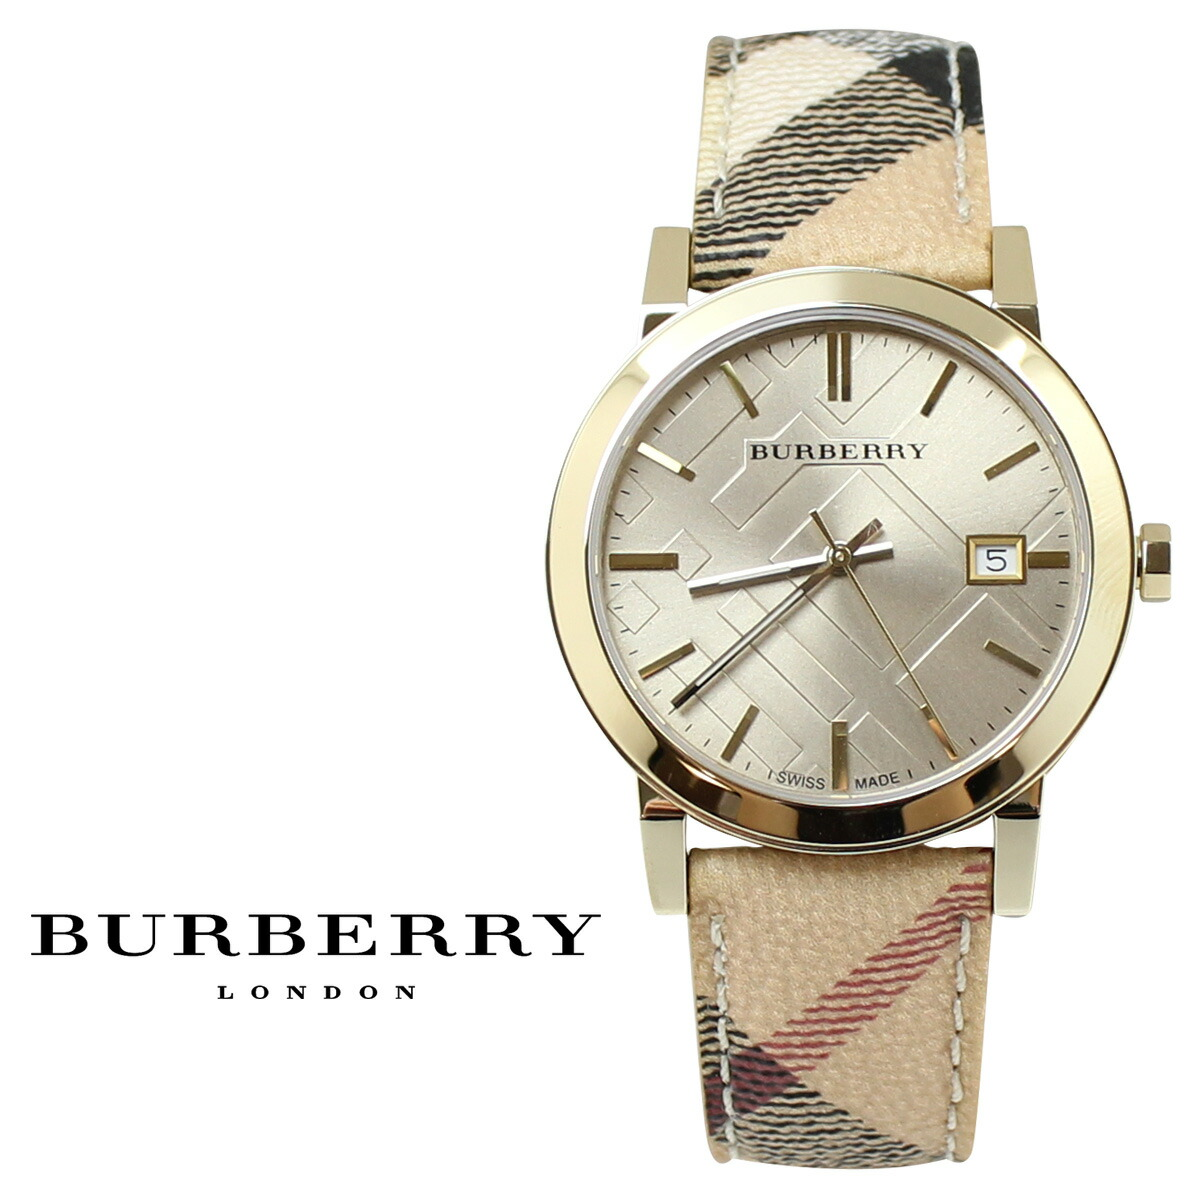 Allsports rakuten global market burberry burberry men 39 s women 39 s watches the city bu9026 9 15 for Burberry watches